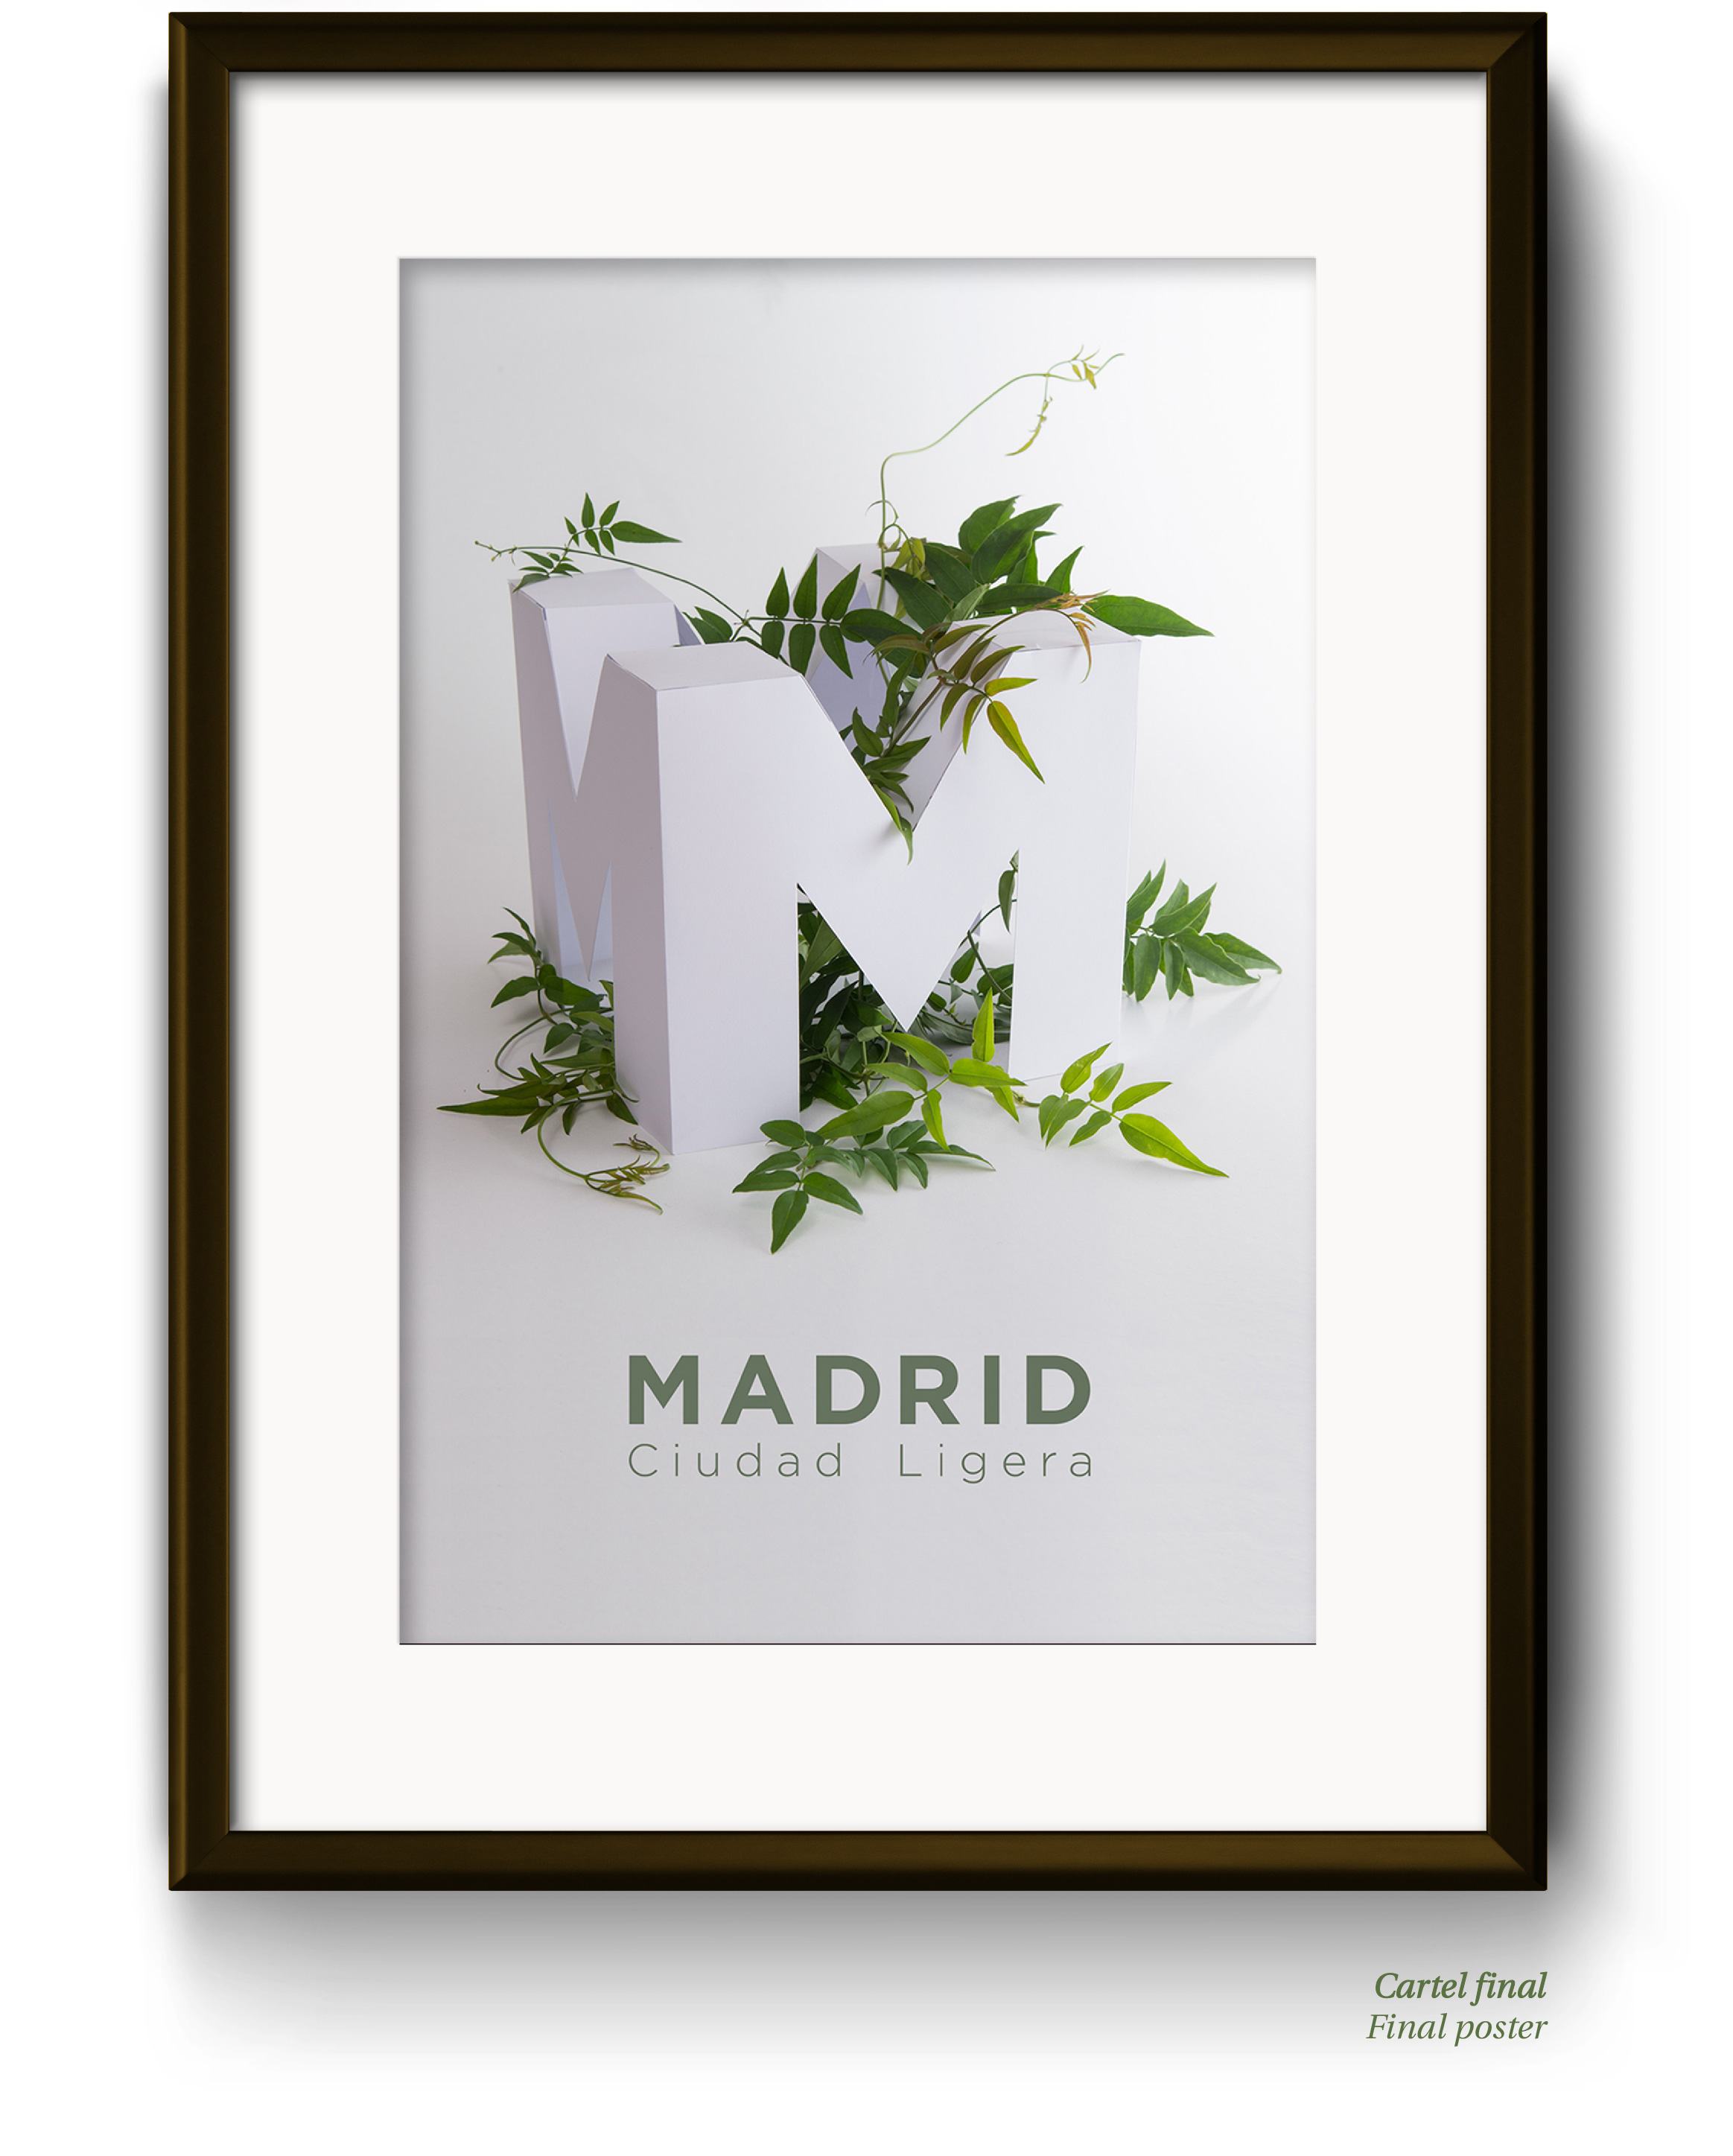 Handcrafted paper model poster